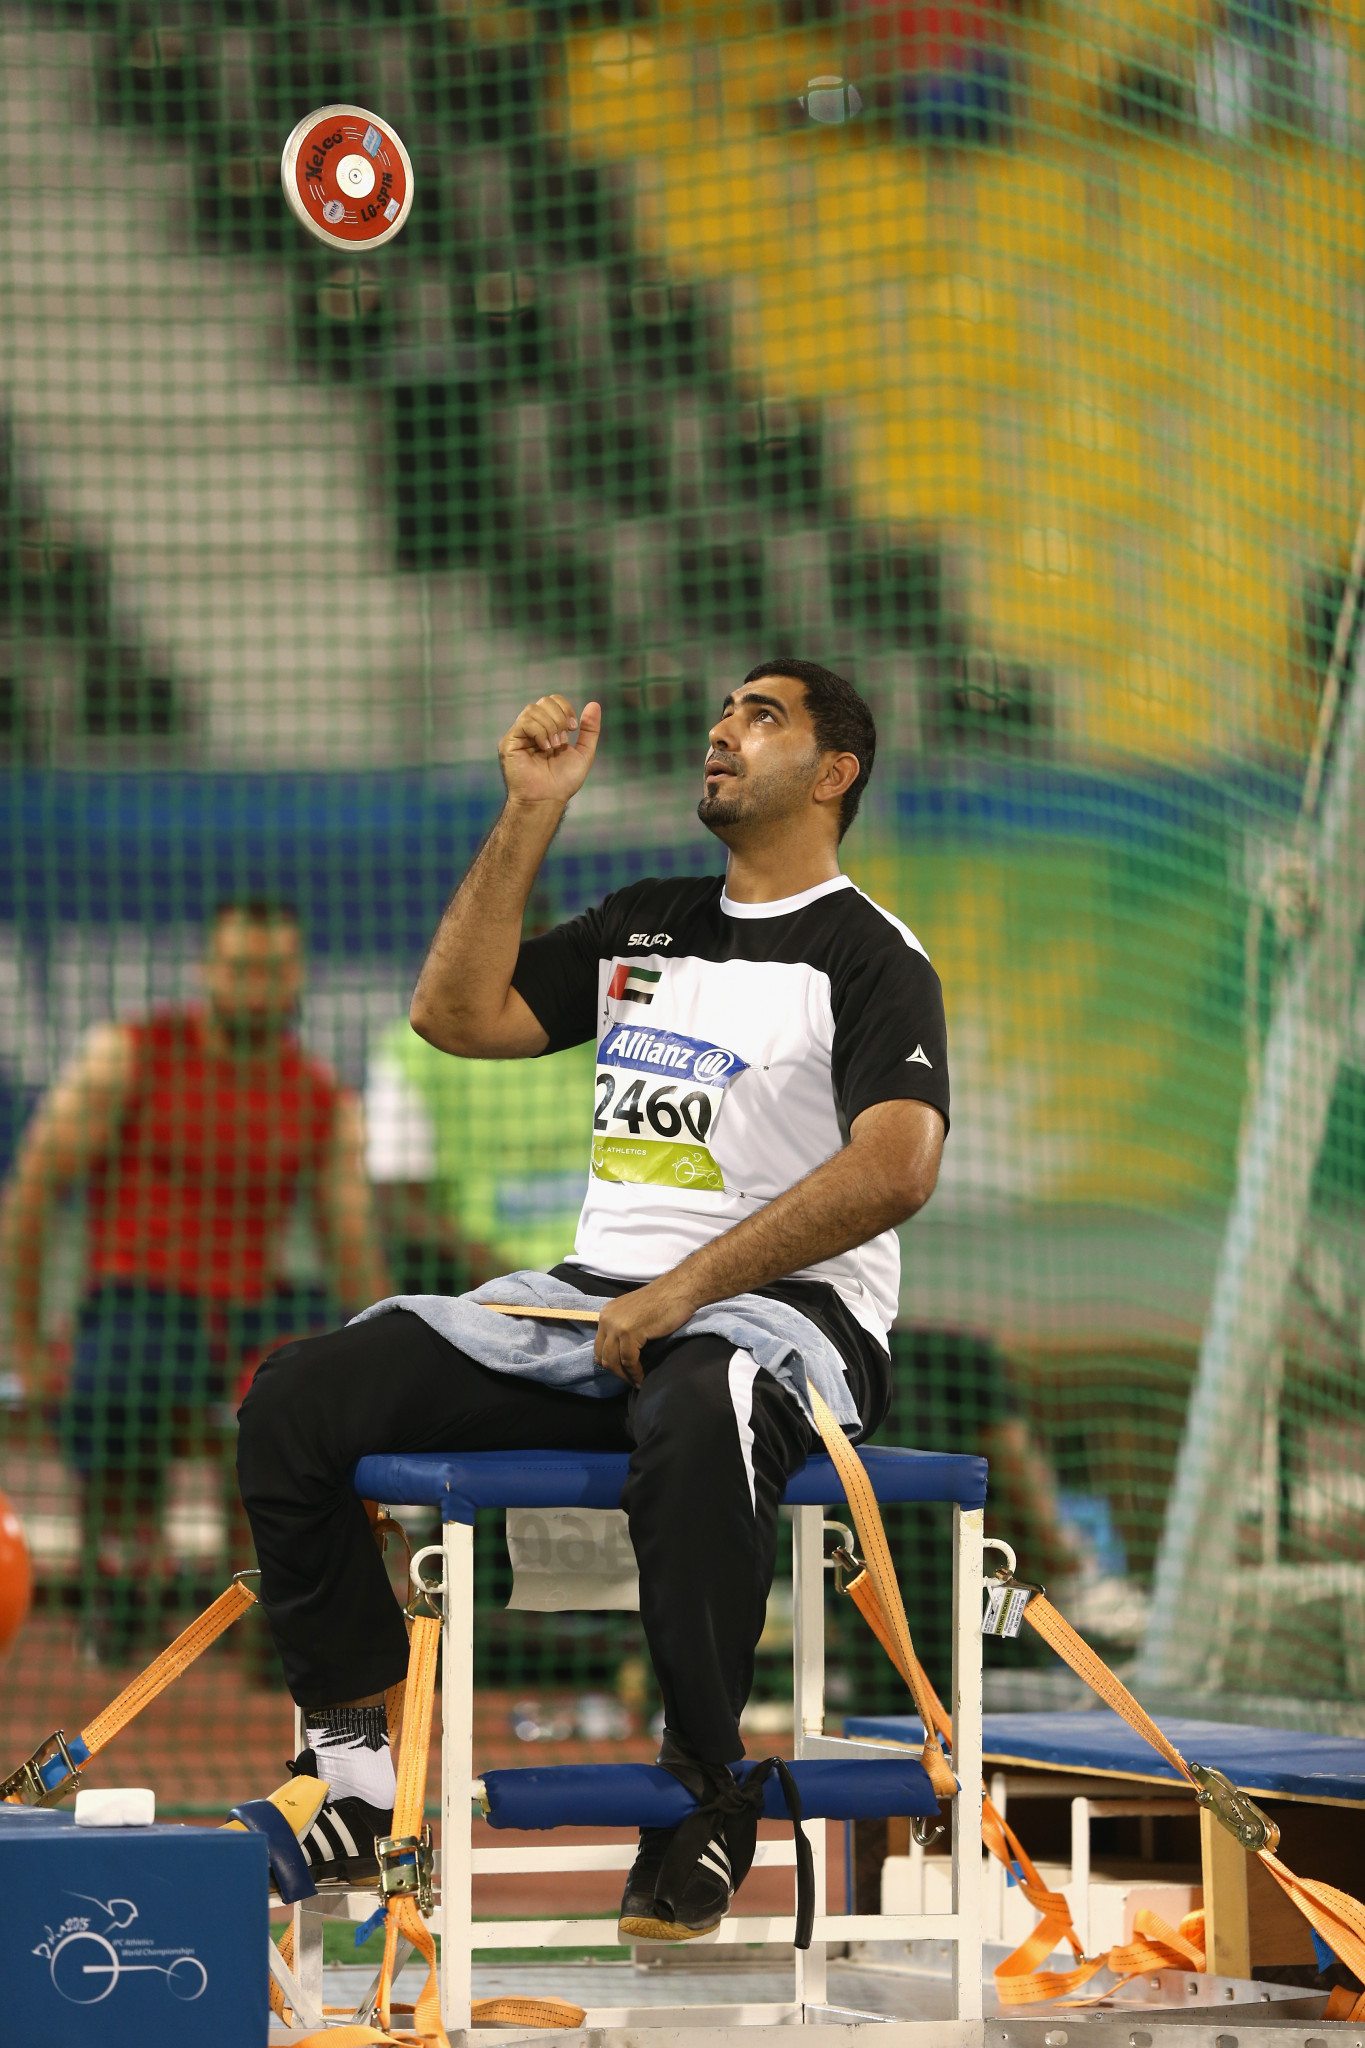 UK Athletics under investigation for corporate manslaughter after death of Hayayei in 2017